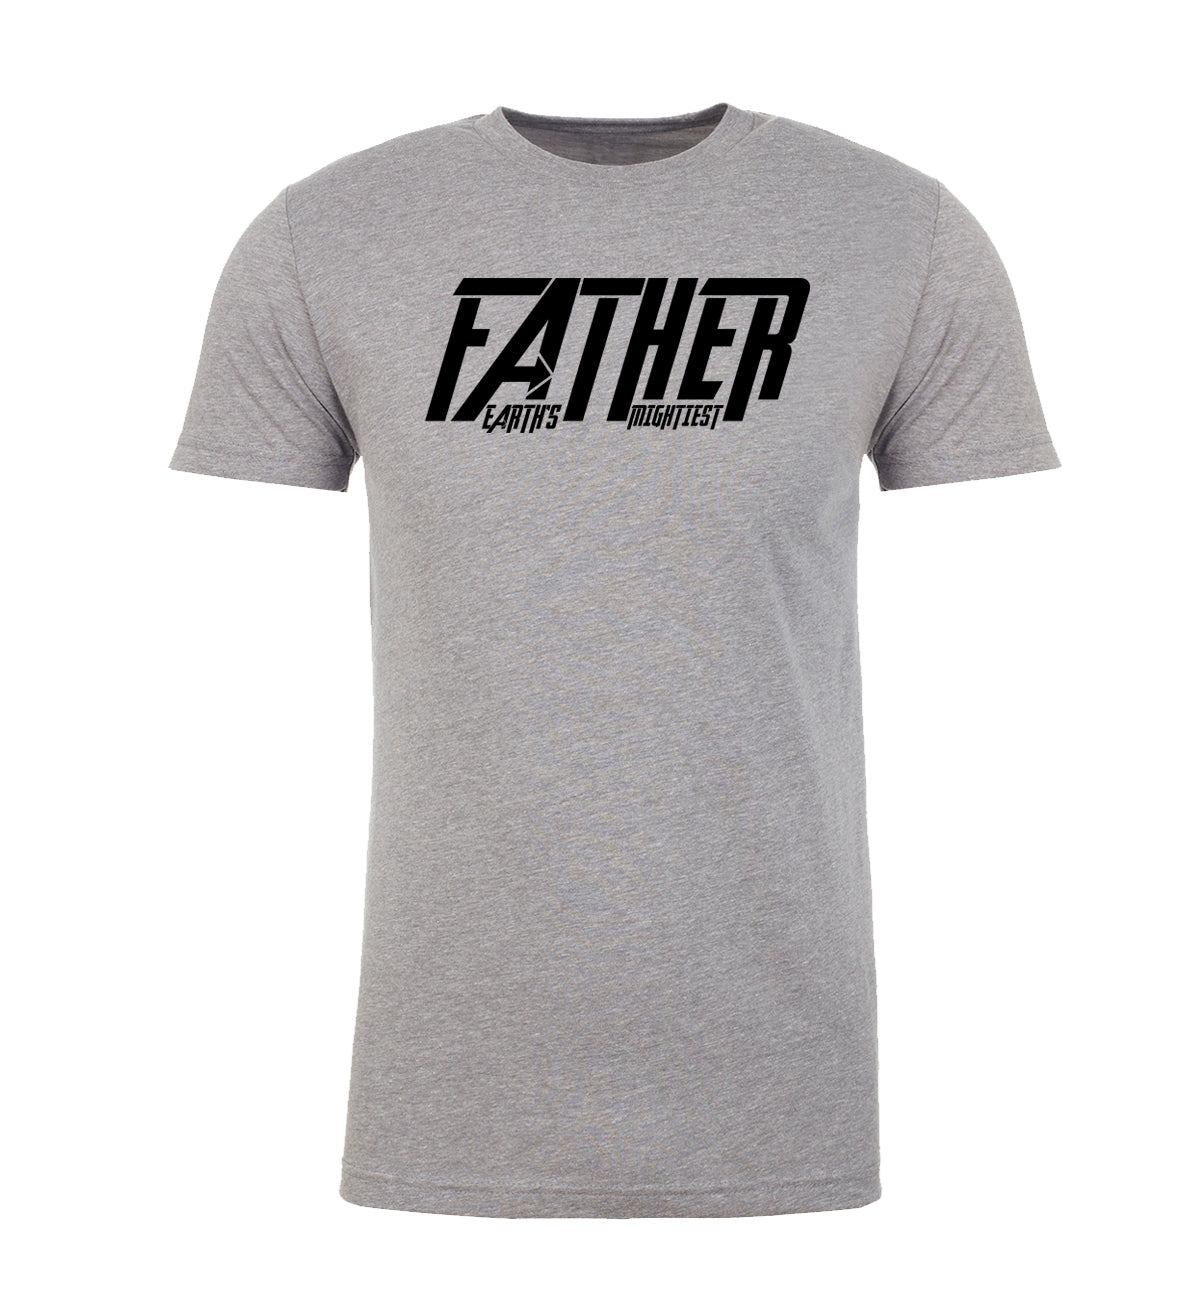 Shirt - Father Earth's Mightiest, Cool Shirts For Dad, Graphic T-shirts For Men